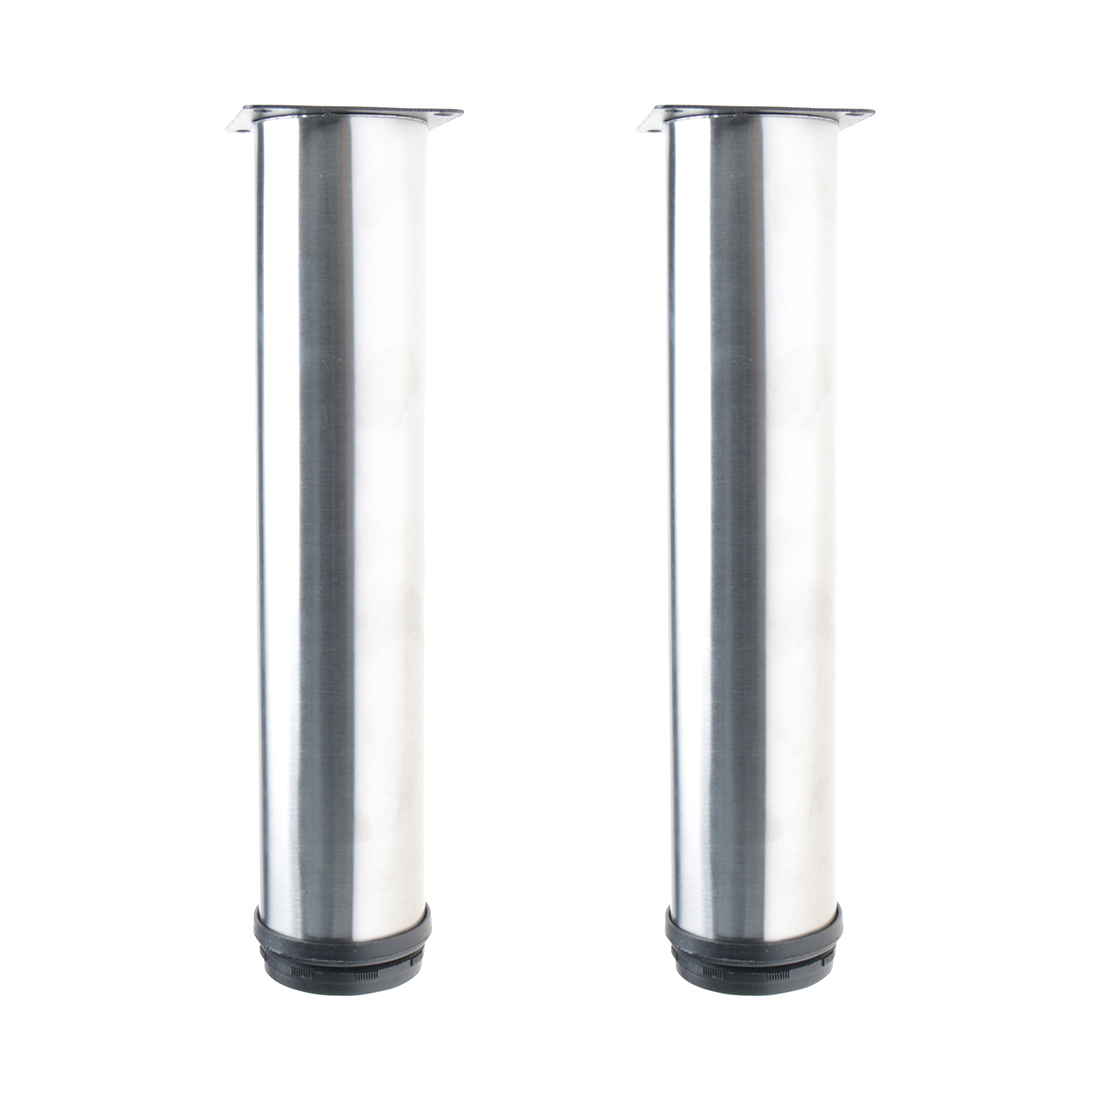 """10"""" Furniture Legs Stainless Steel Sofa Bench Adjustable Feet Replacement 2pcs"""